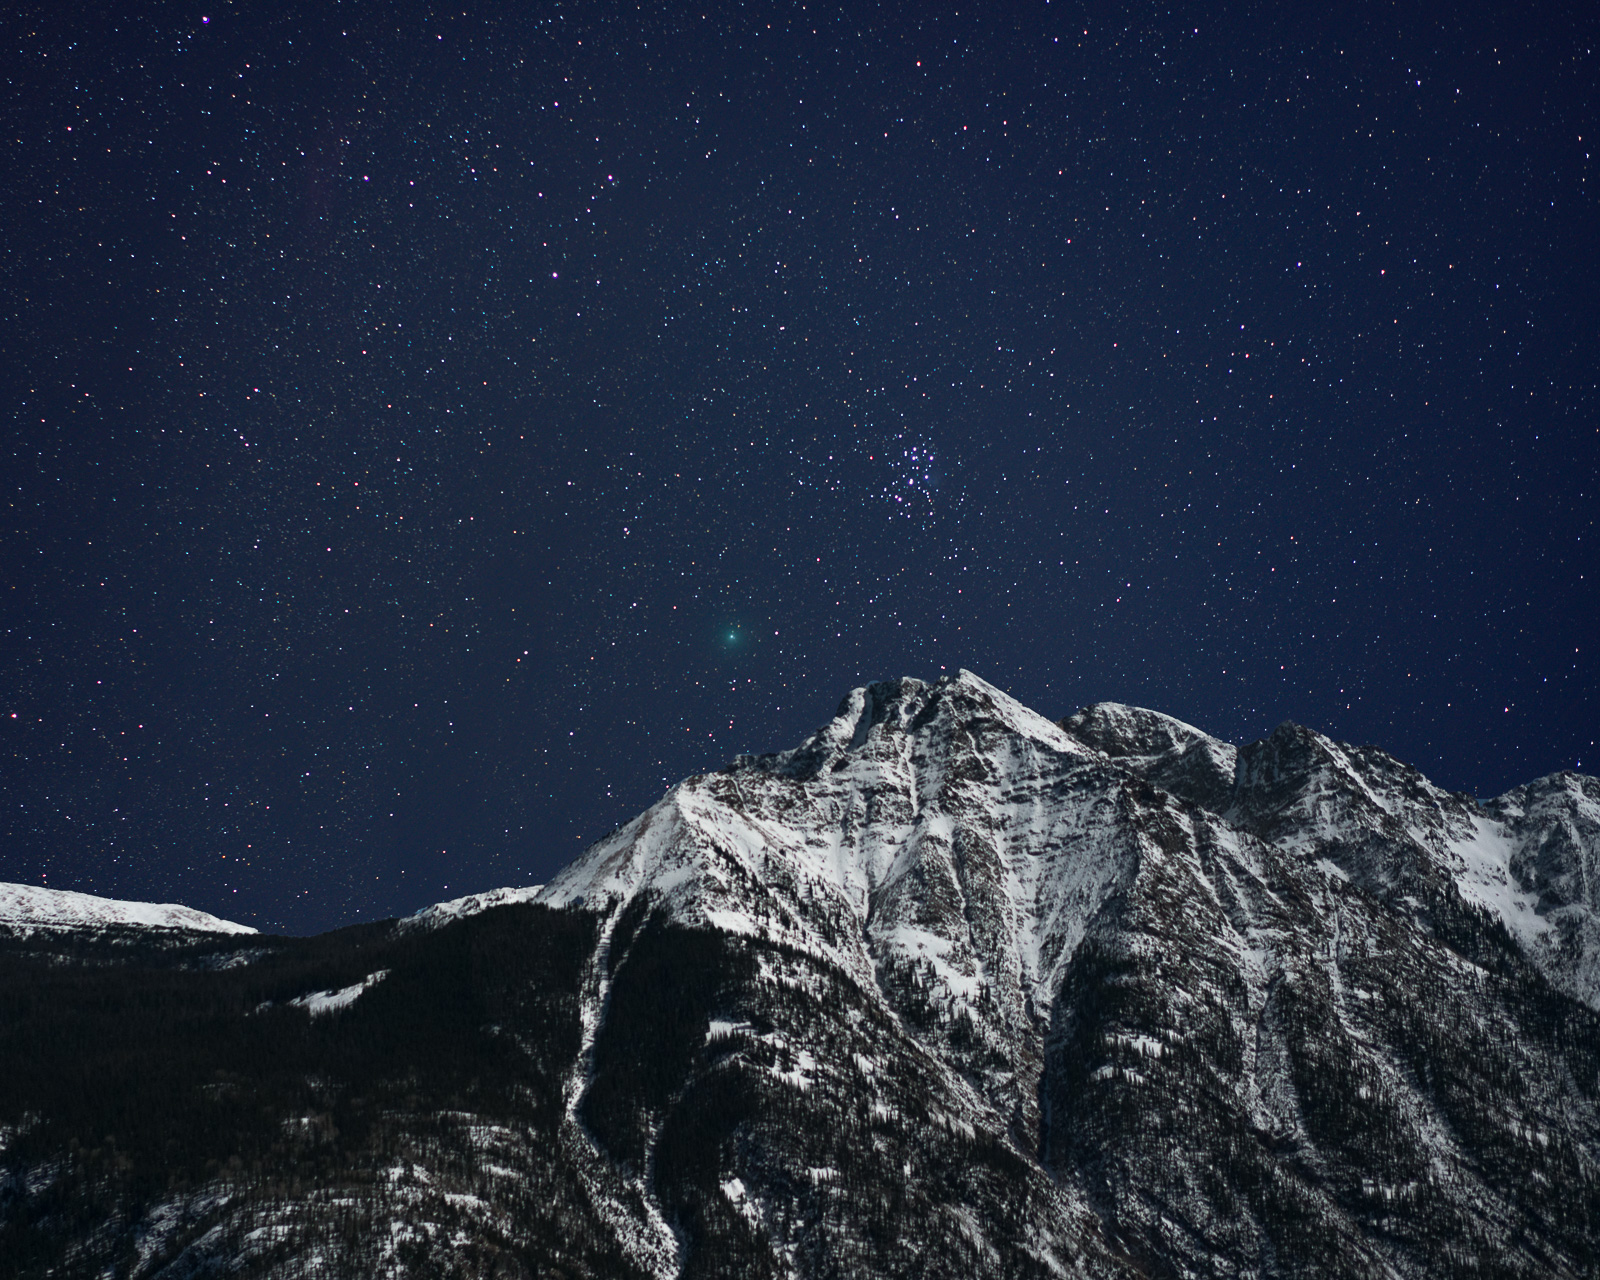 46P/Wirtanen, Colorado, Comet, Durango, Night, Twilight Peak, photo